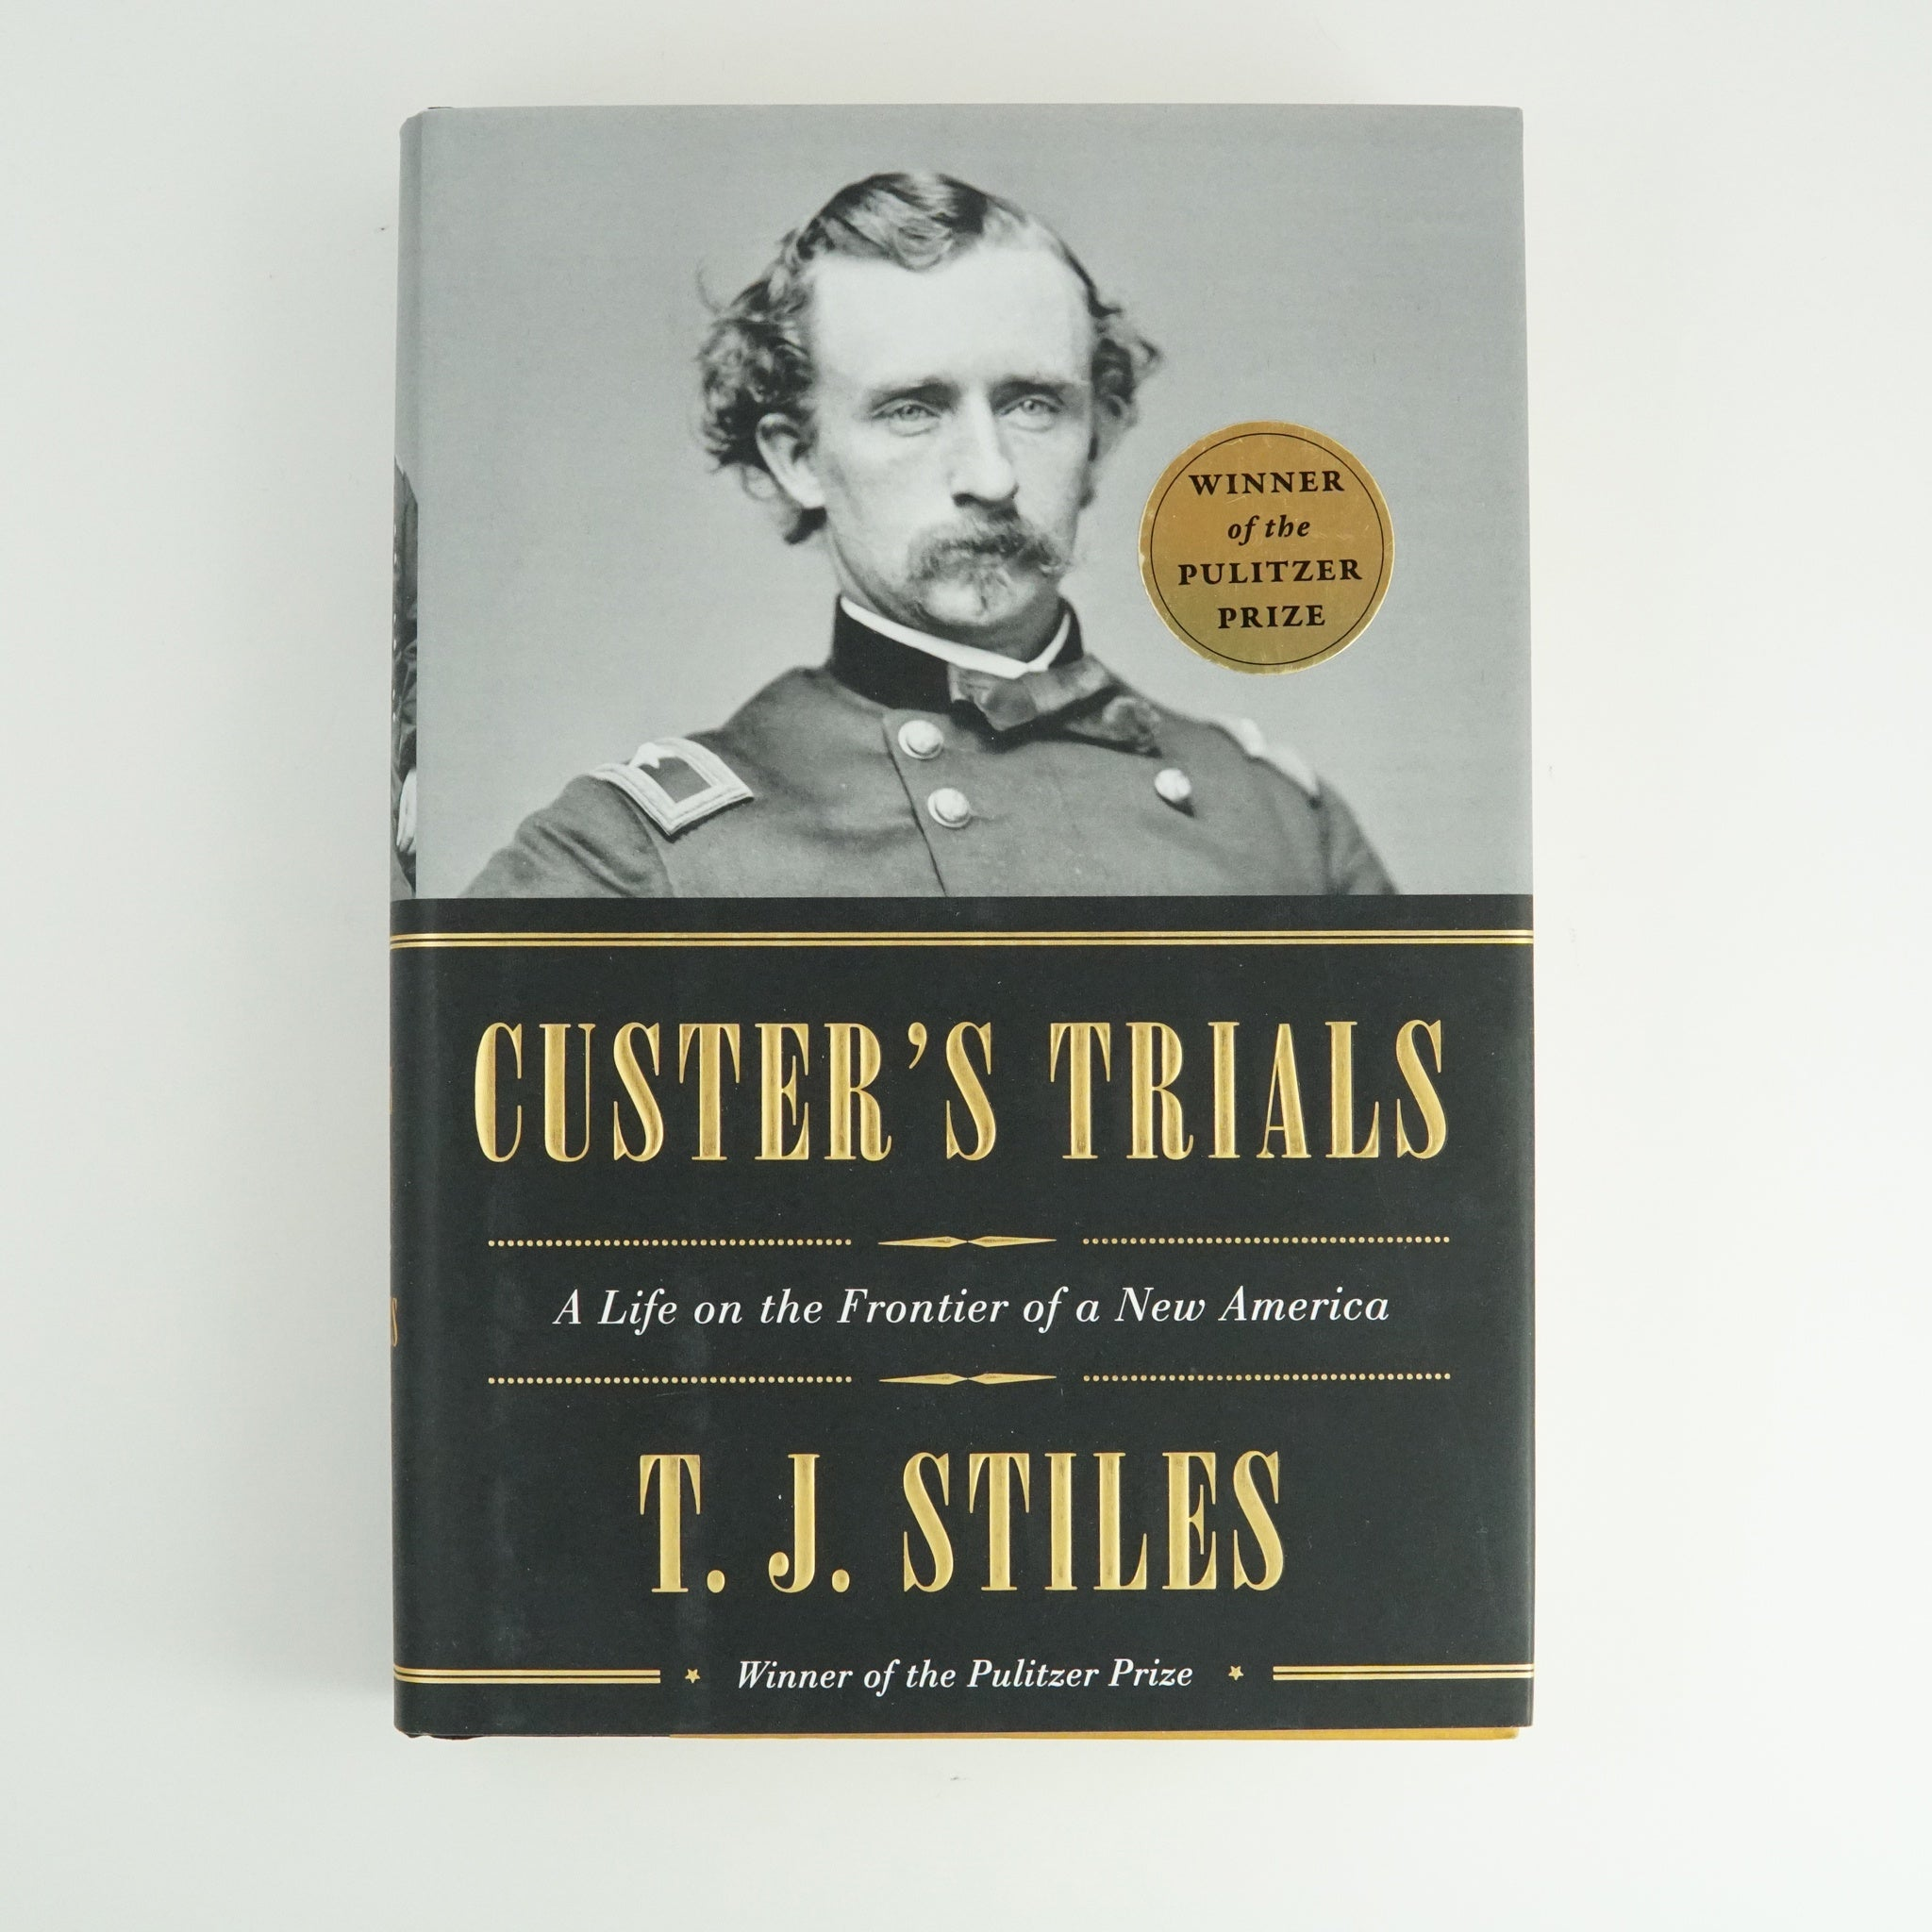 BK 8 CUSTER'S TRIALS BY  T. J. STILES